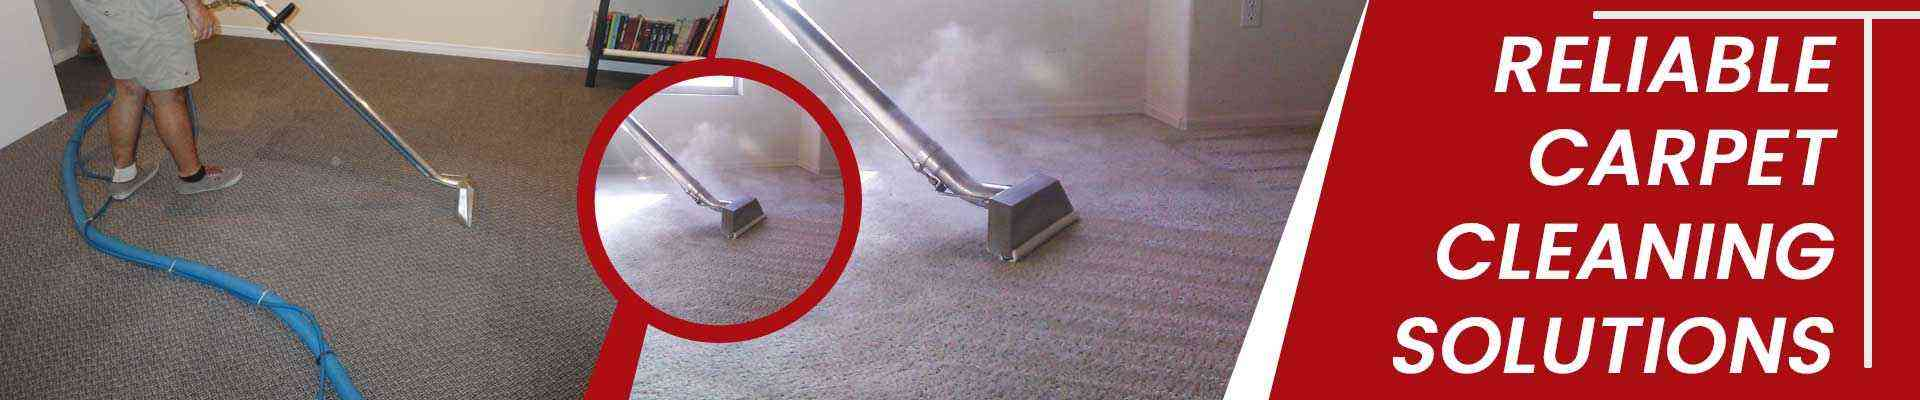 Carpet Cleaning Sylvania